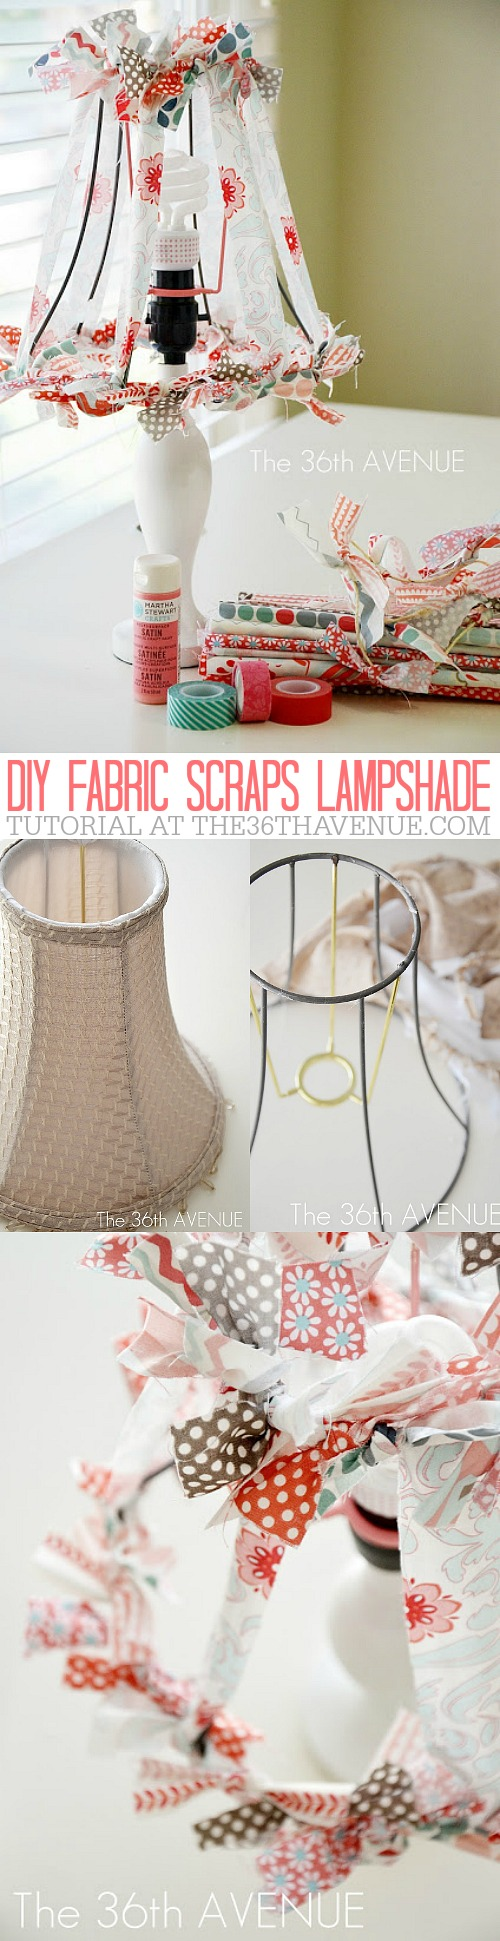 DIY FABRIC SCRAPS LAMPSHADE at the36thavenue.com